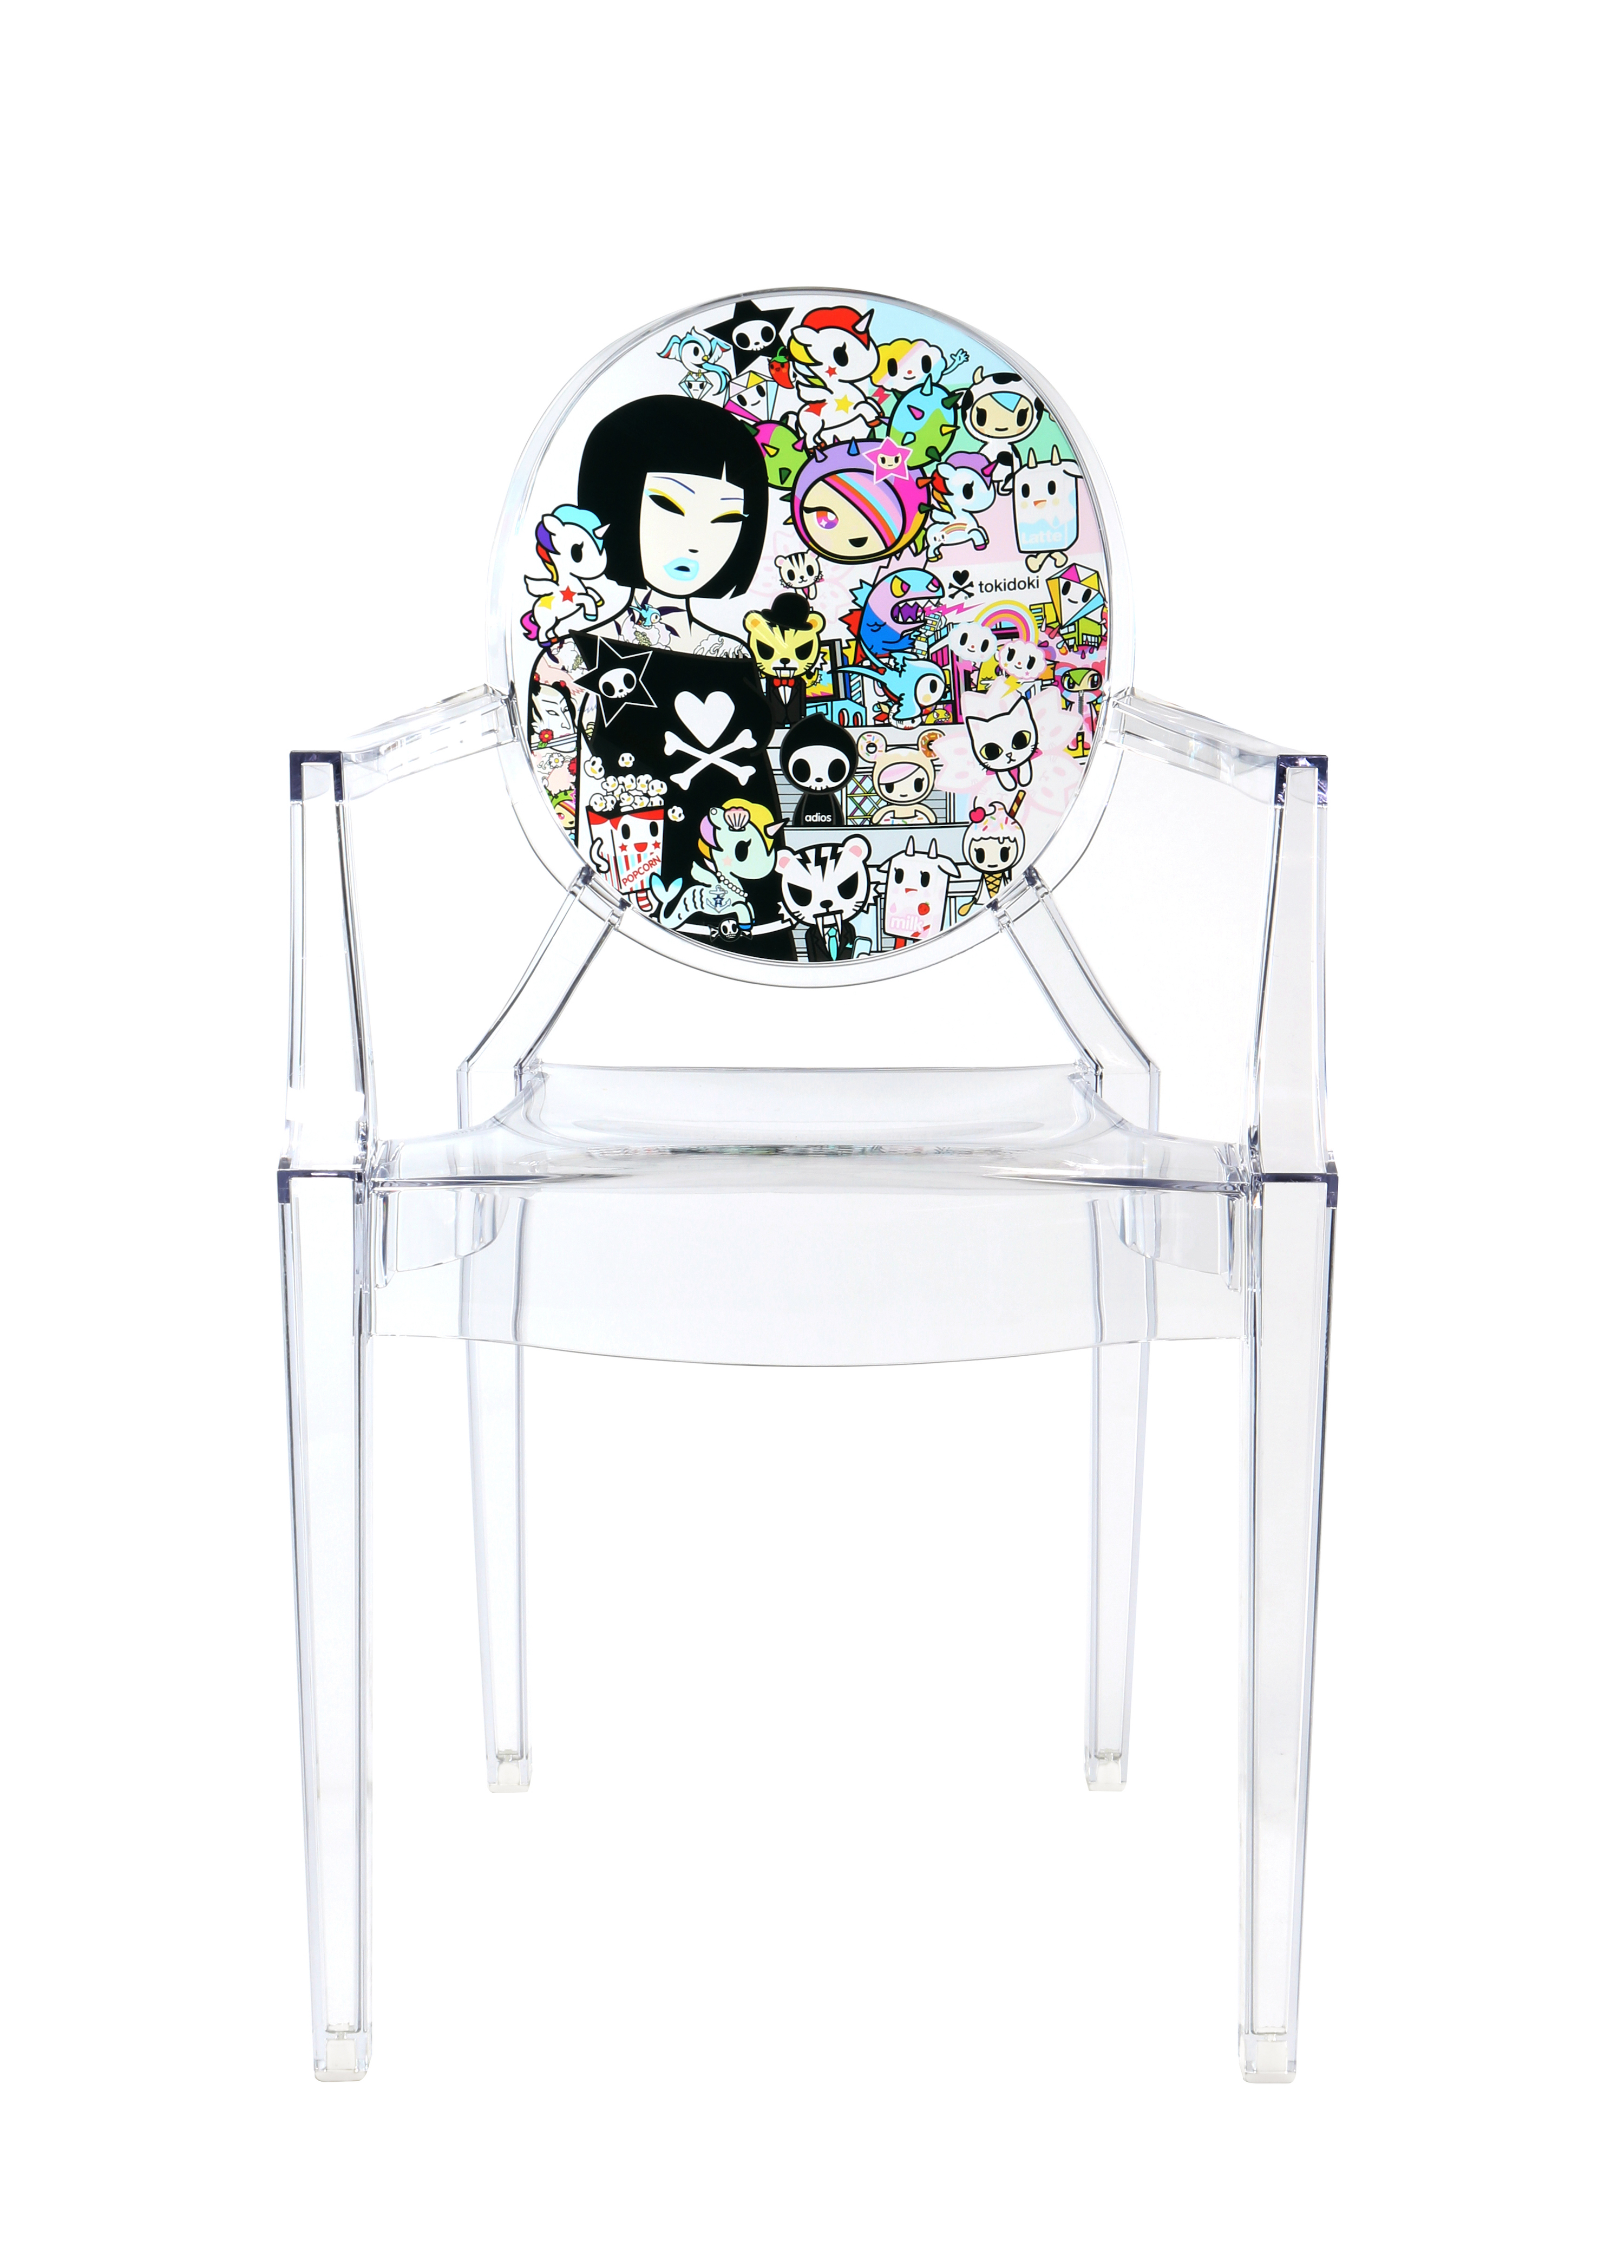 TOKIDOKI x KARTELL Where Art Meets An Italian Iconic Classic